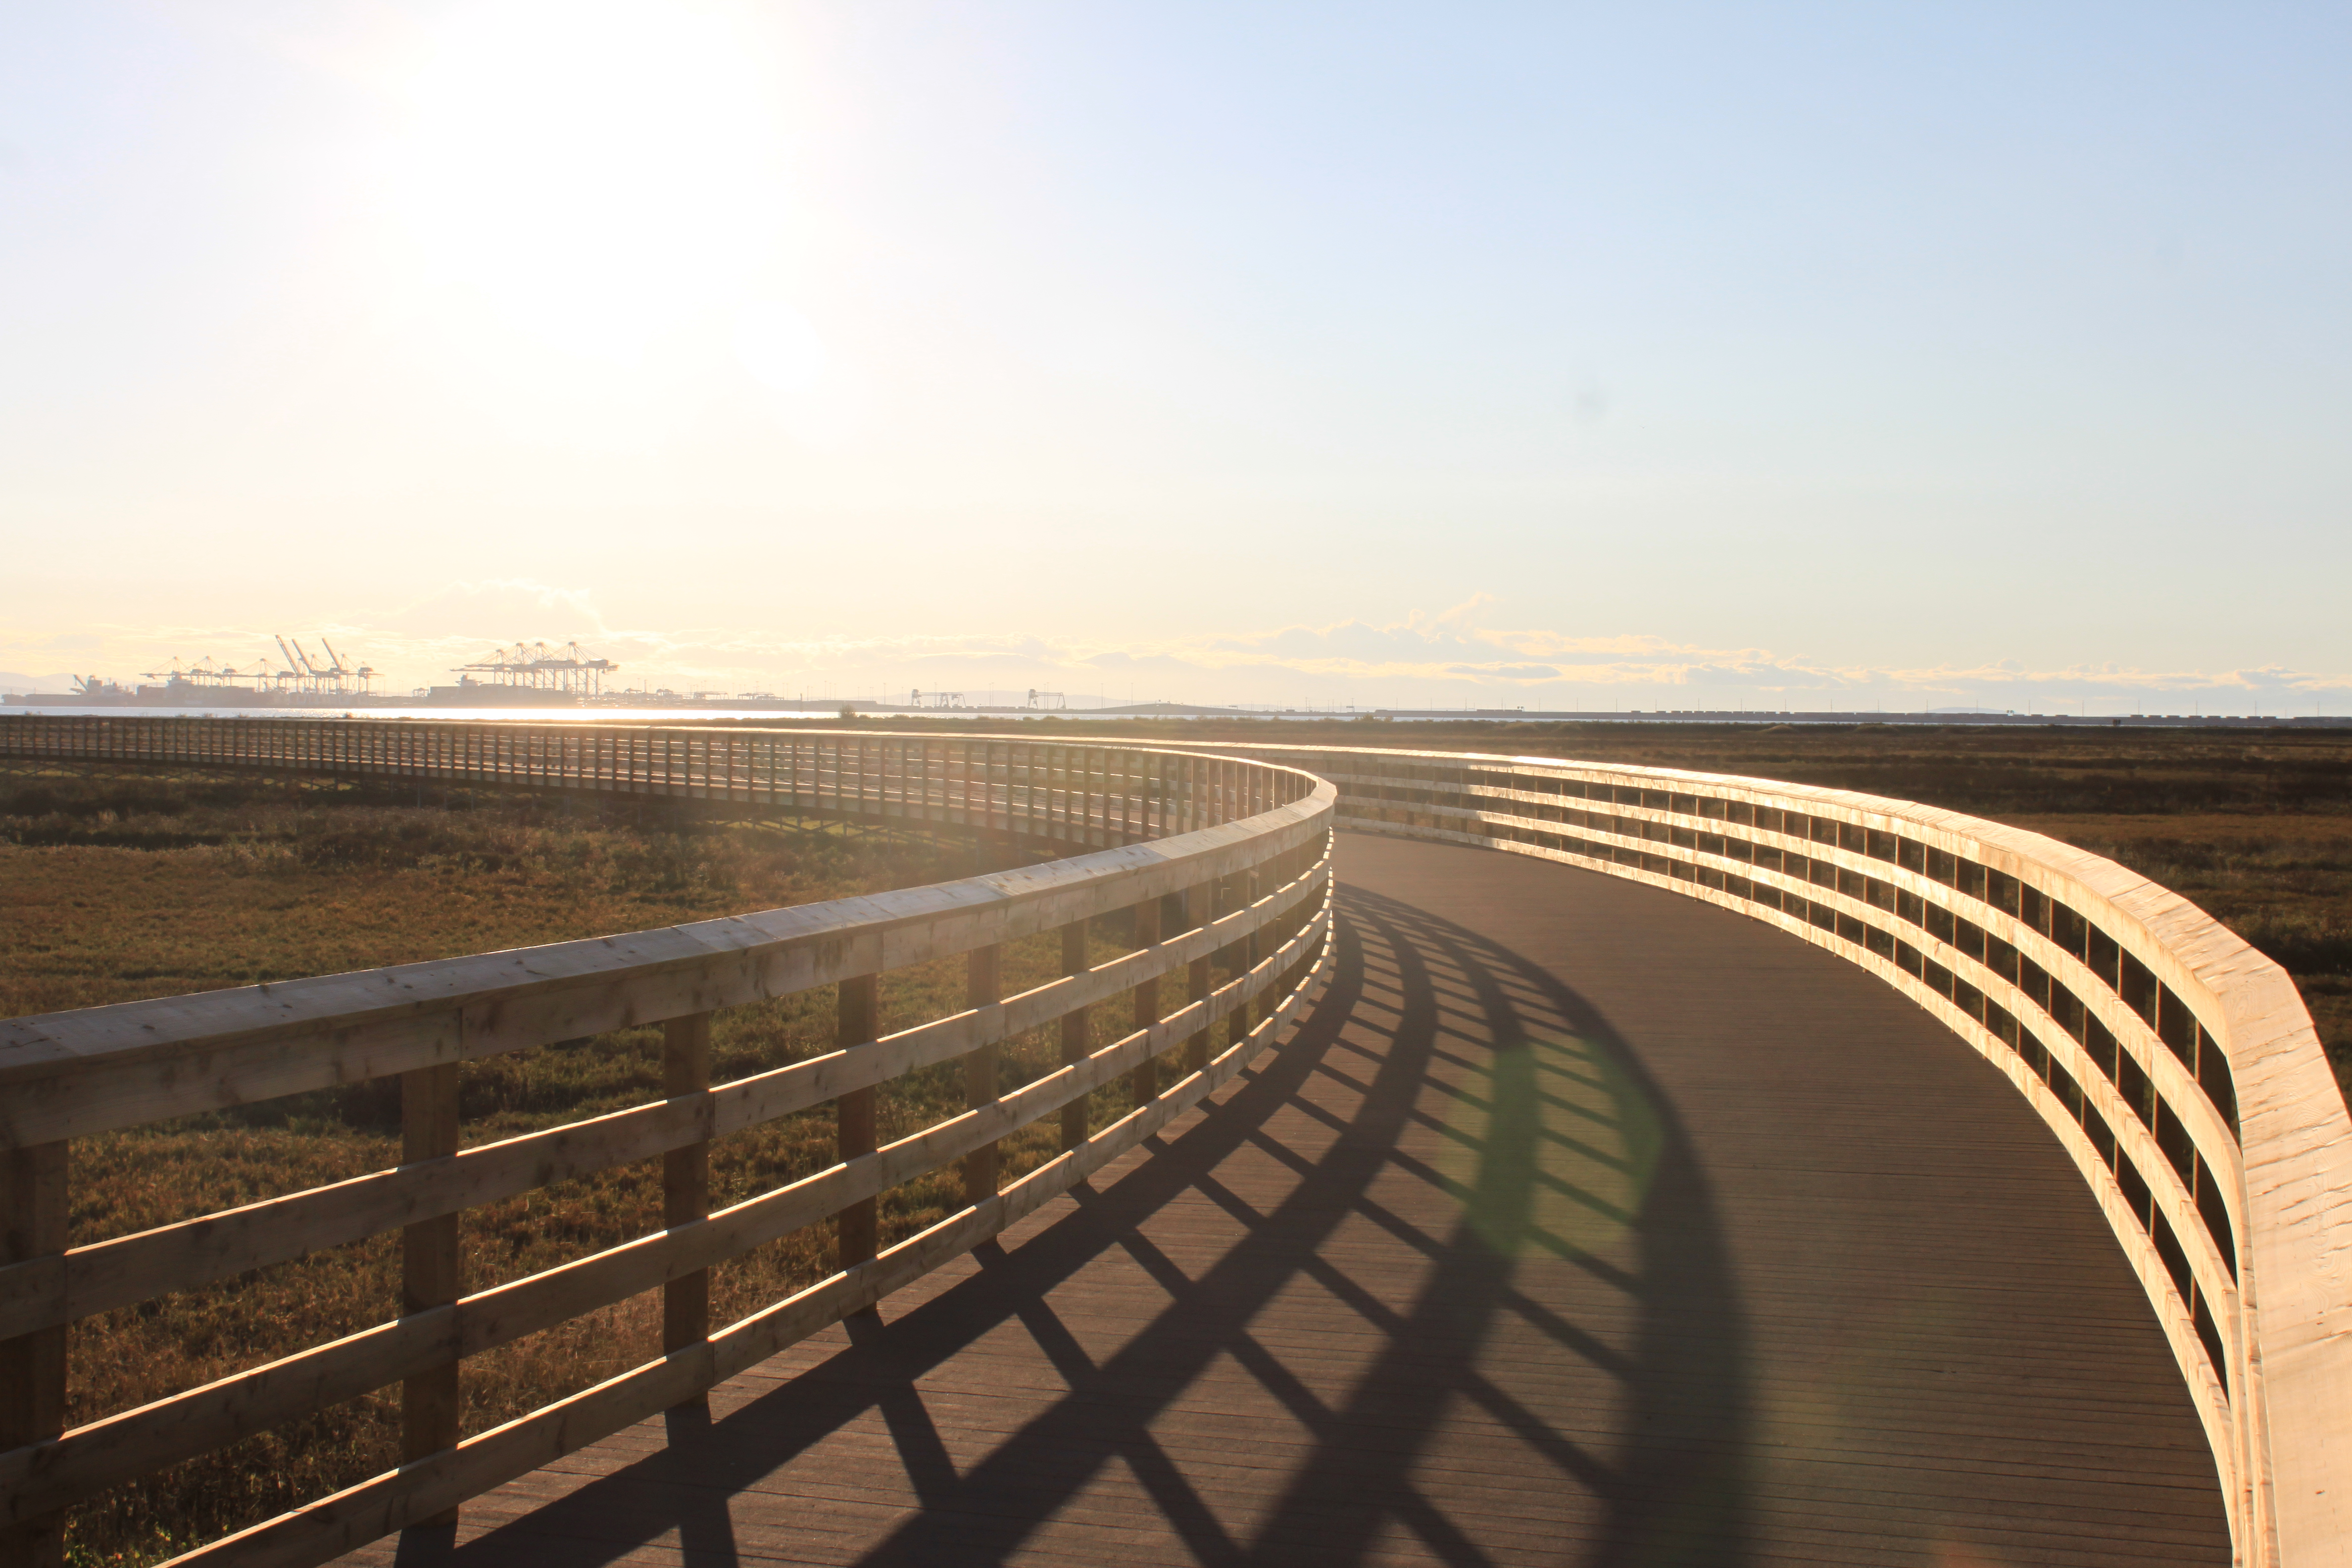 The completed boardwalk at sunset